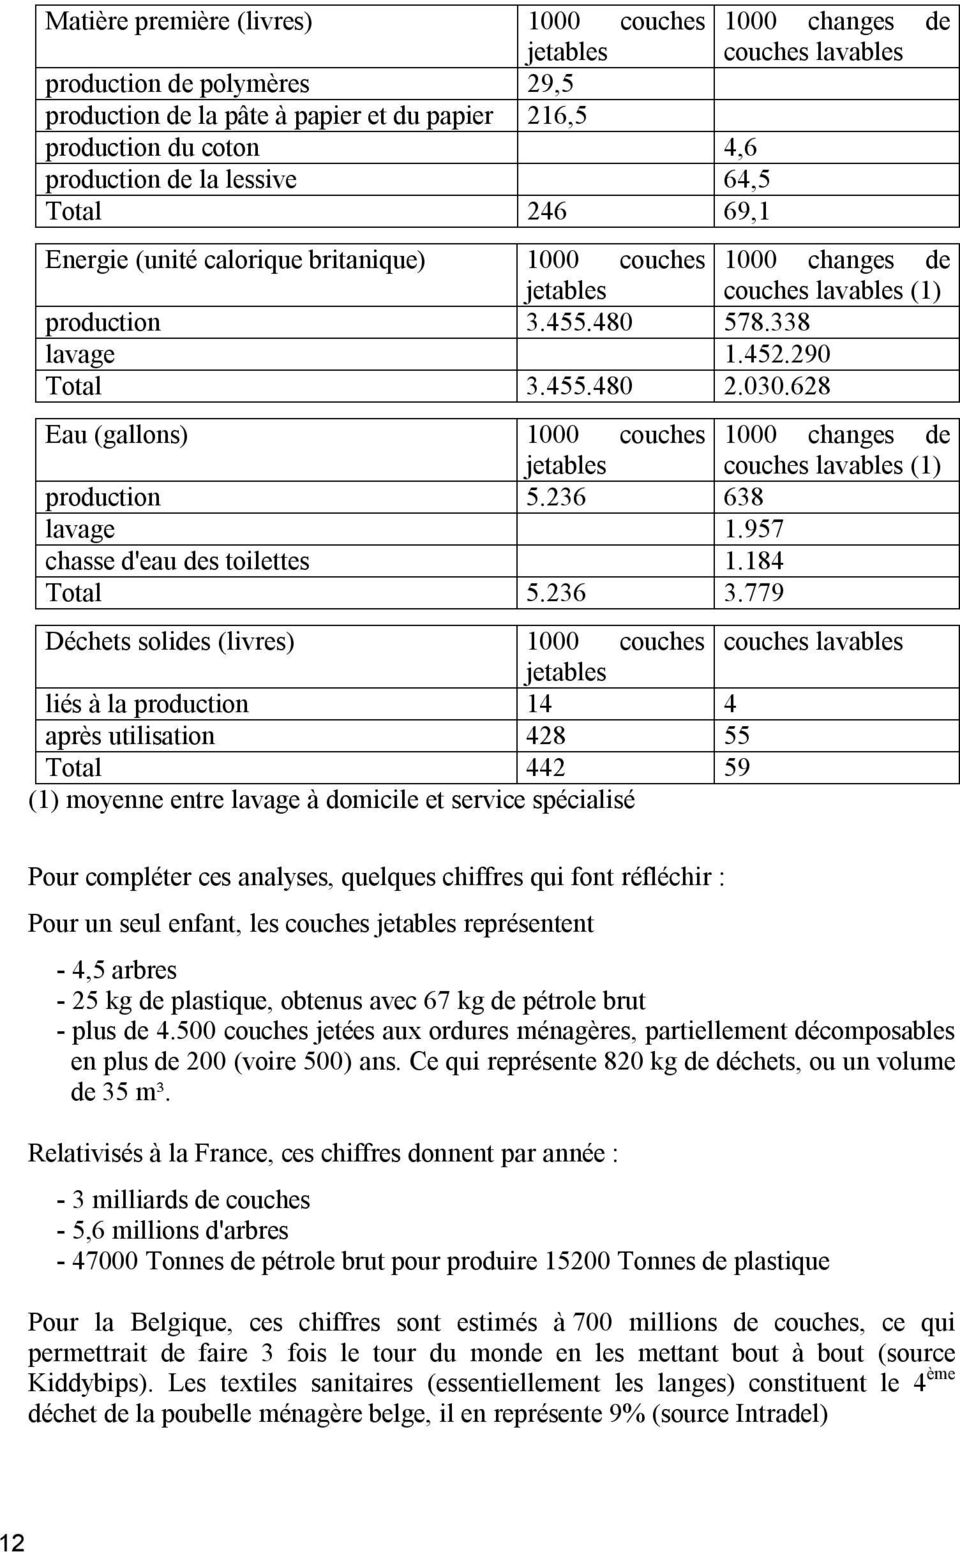 628 Eau (gallons) 1000 couches 1000 changes de jetables couches lavables (1) production 5.236 638 lavage 1.957 chasse d'eau des toilettes 1.184 Total 5.236 3.